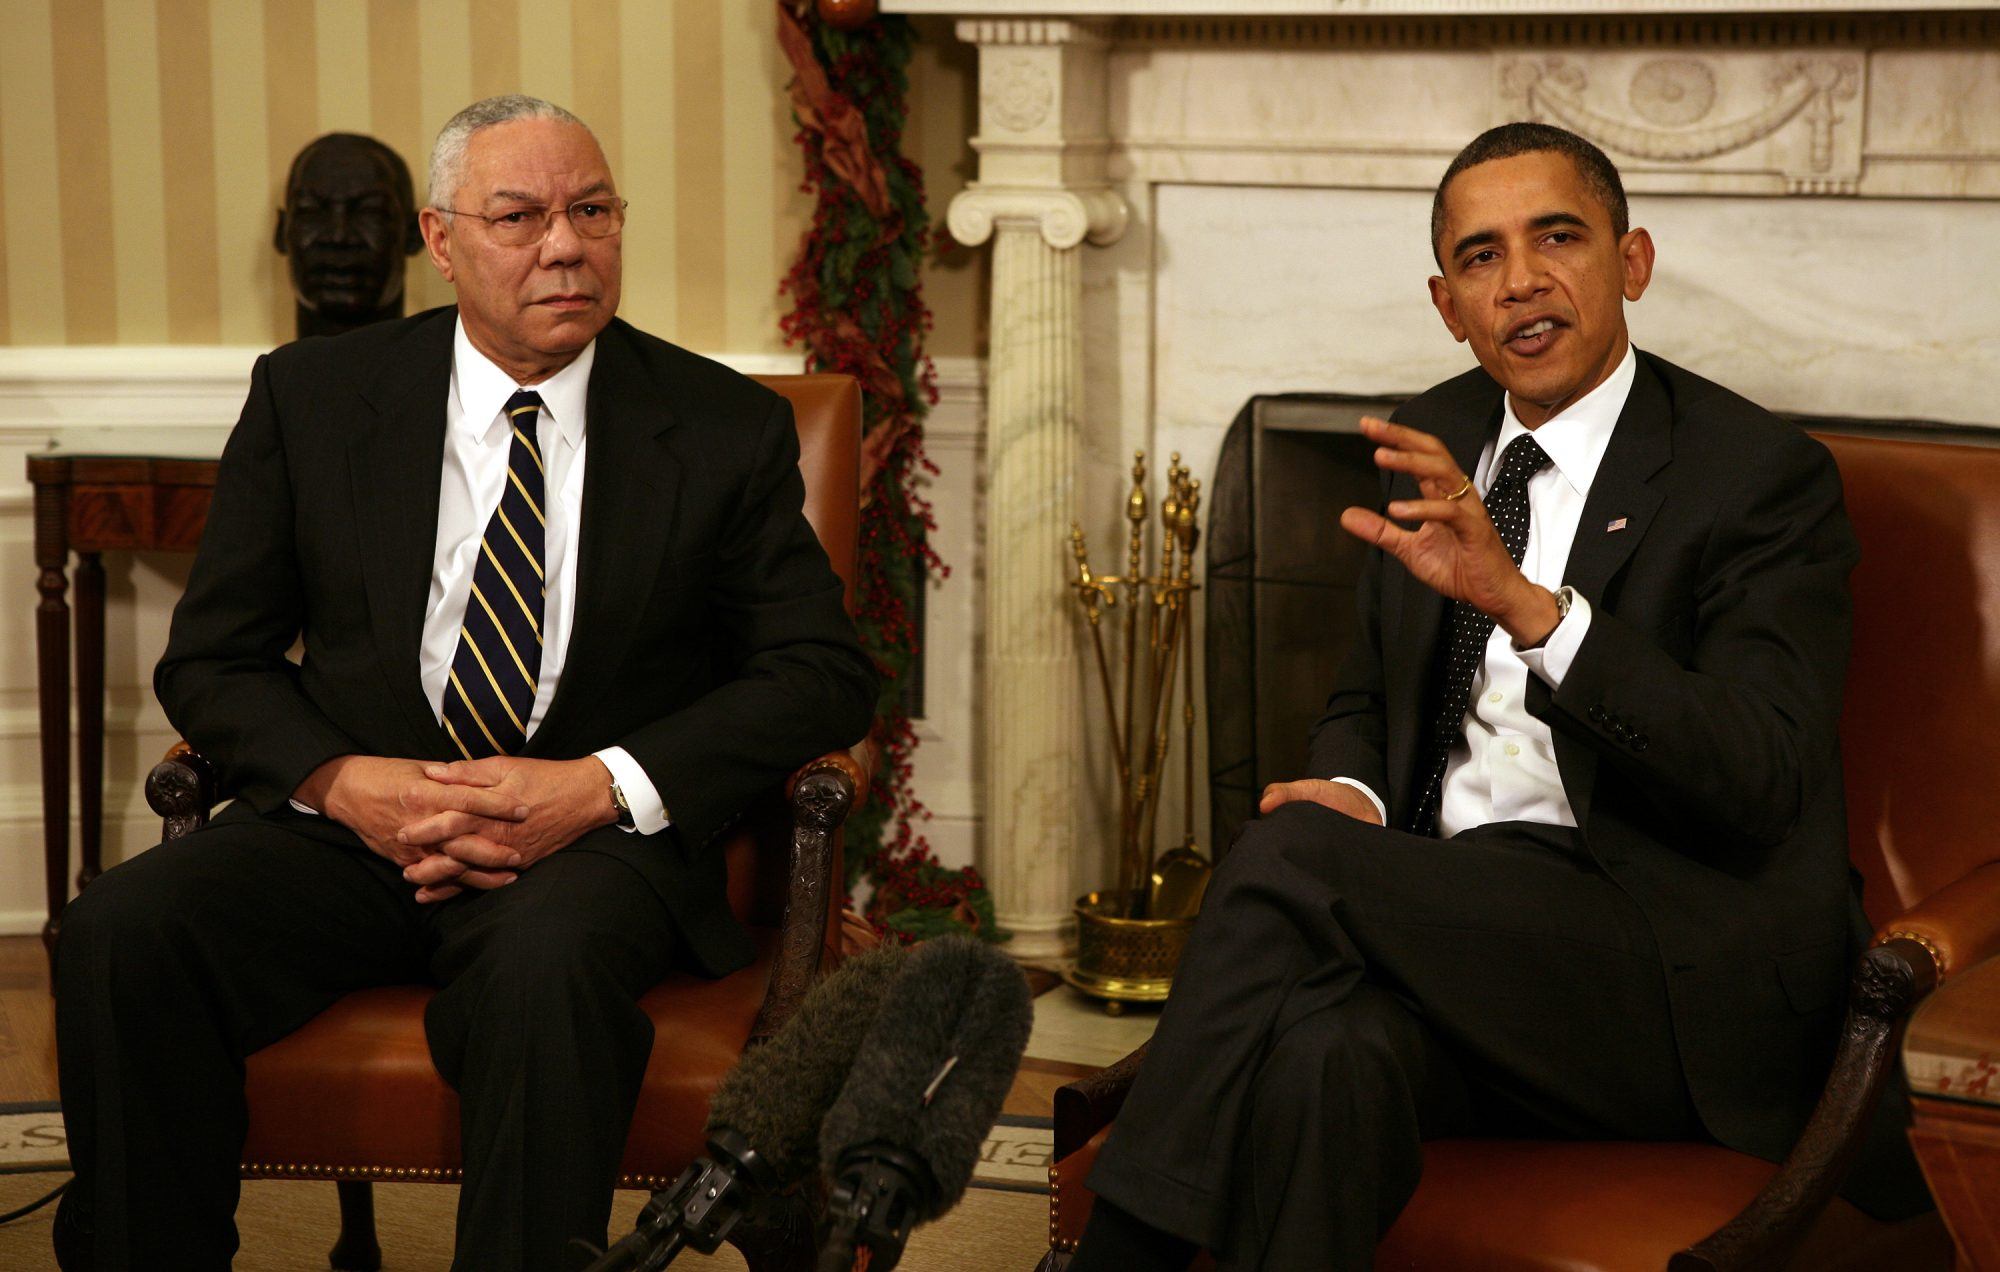 Barack Obama and General Colin Powell